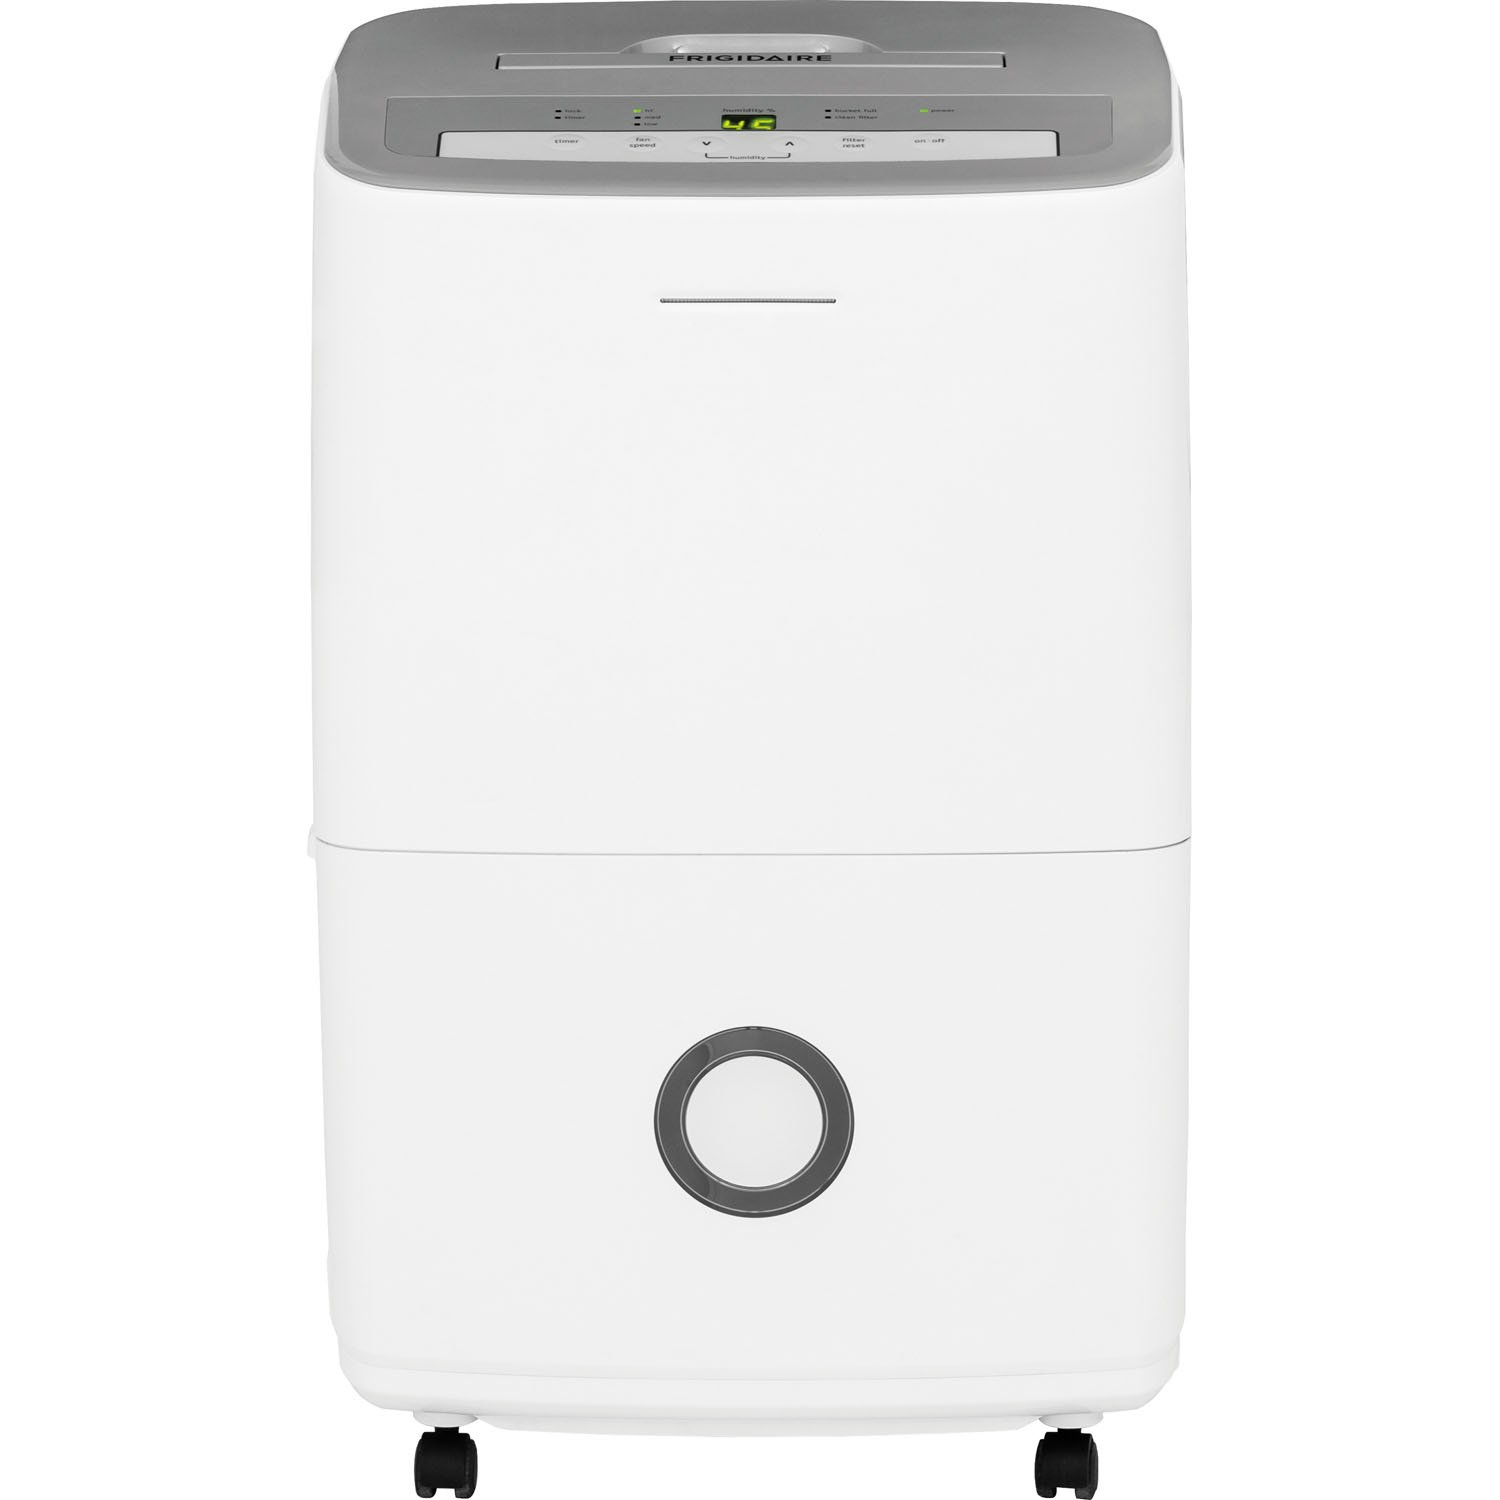 kenmore 35 pint dehumidifier. amazon.com: frigidaire 50-pint dehumidifier with effortless humidity control, white: home \u0026 kitchen kenmore 35 pint